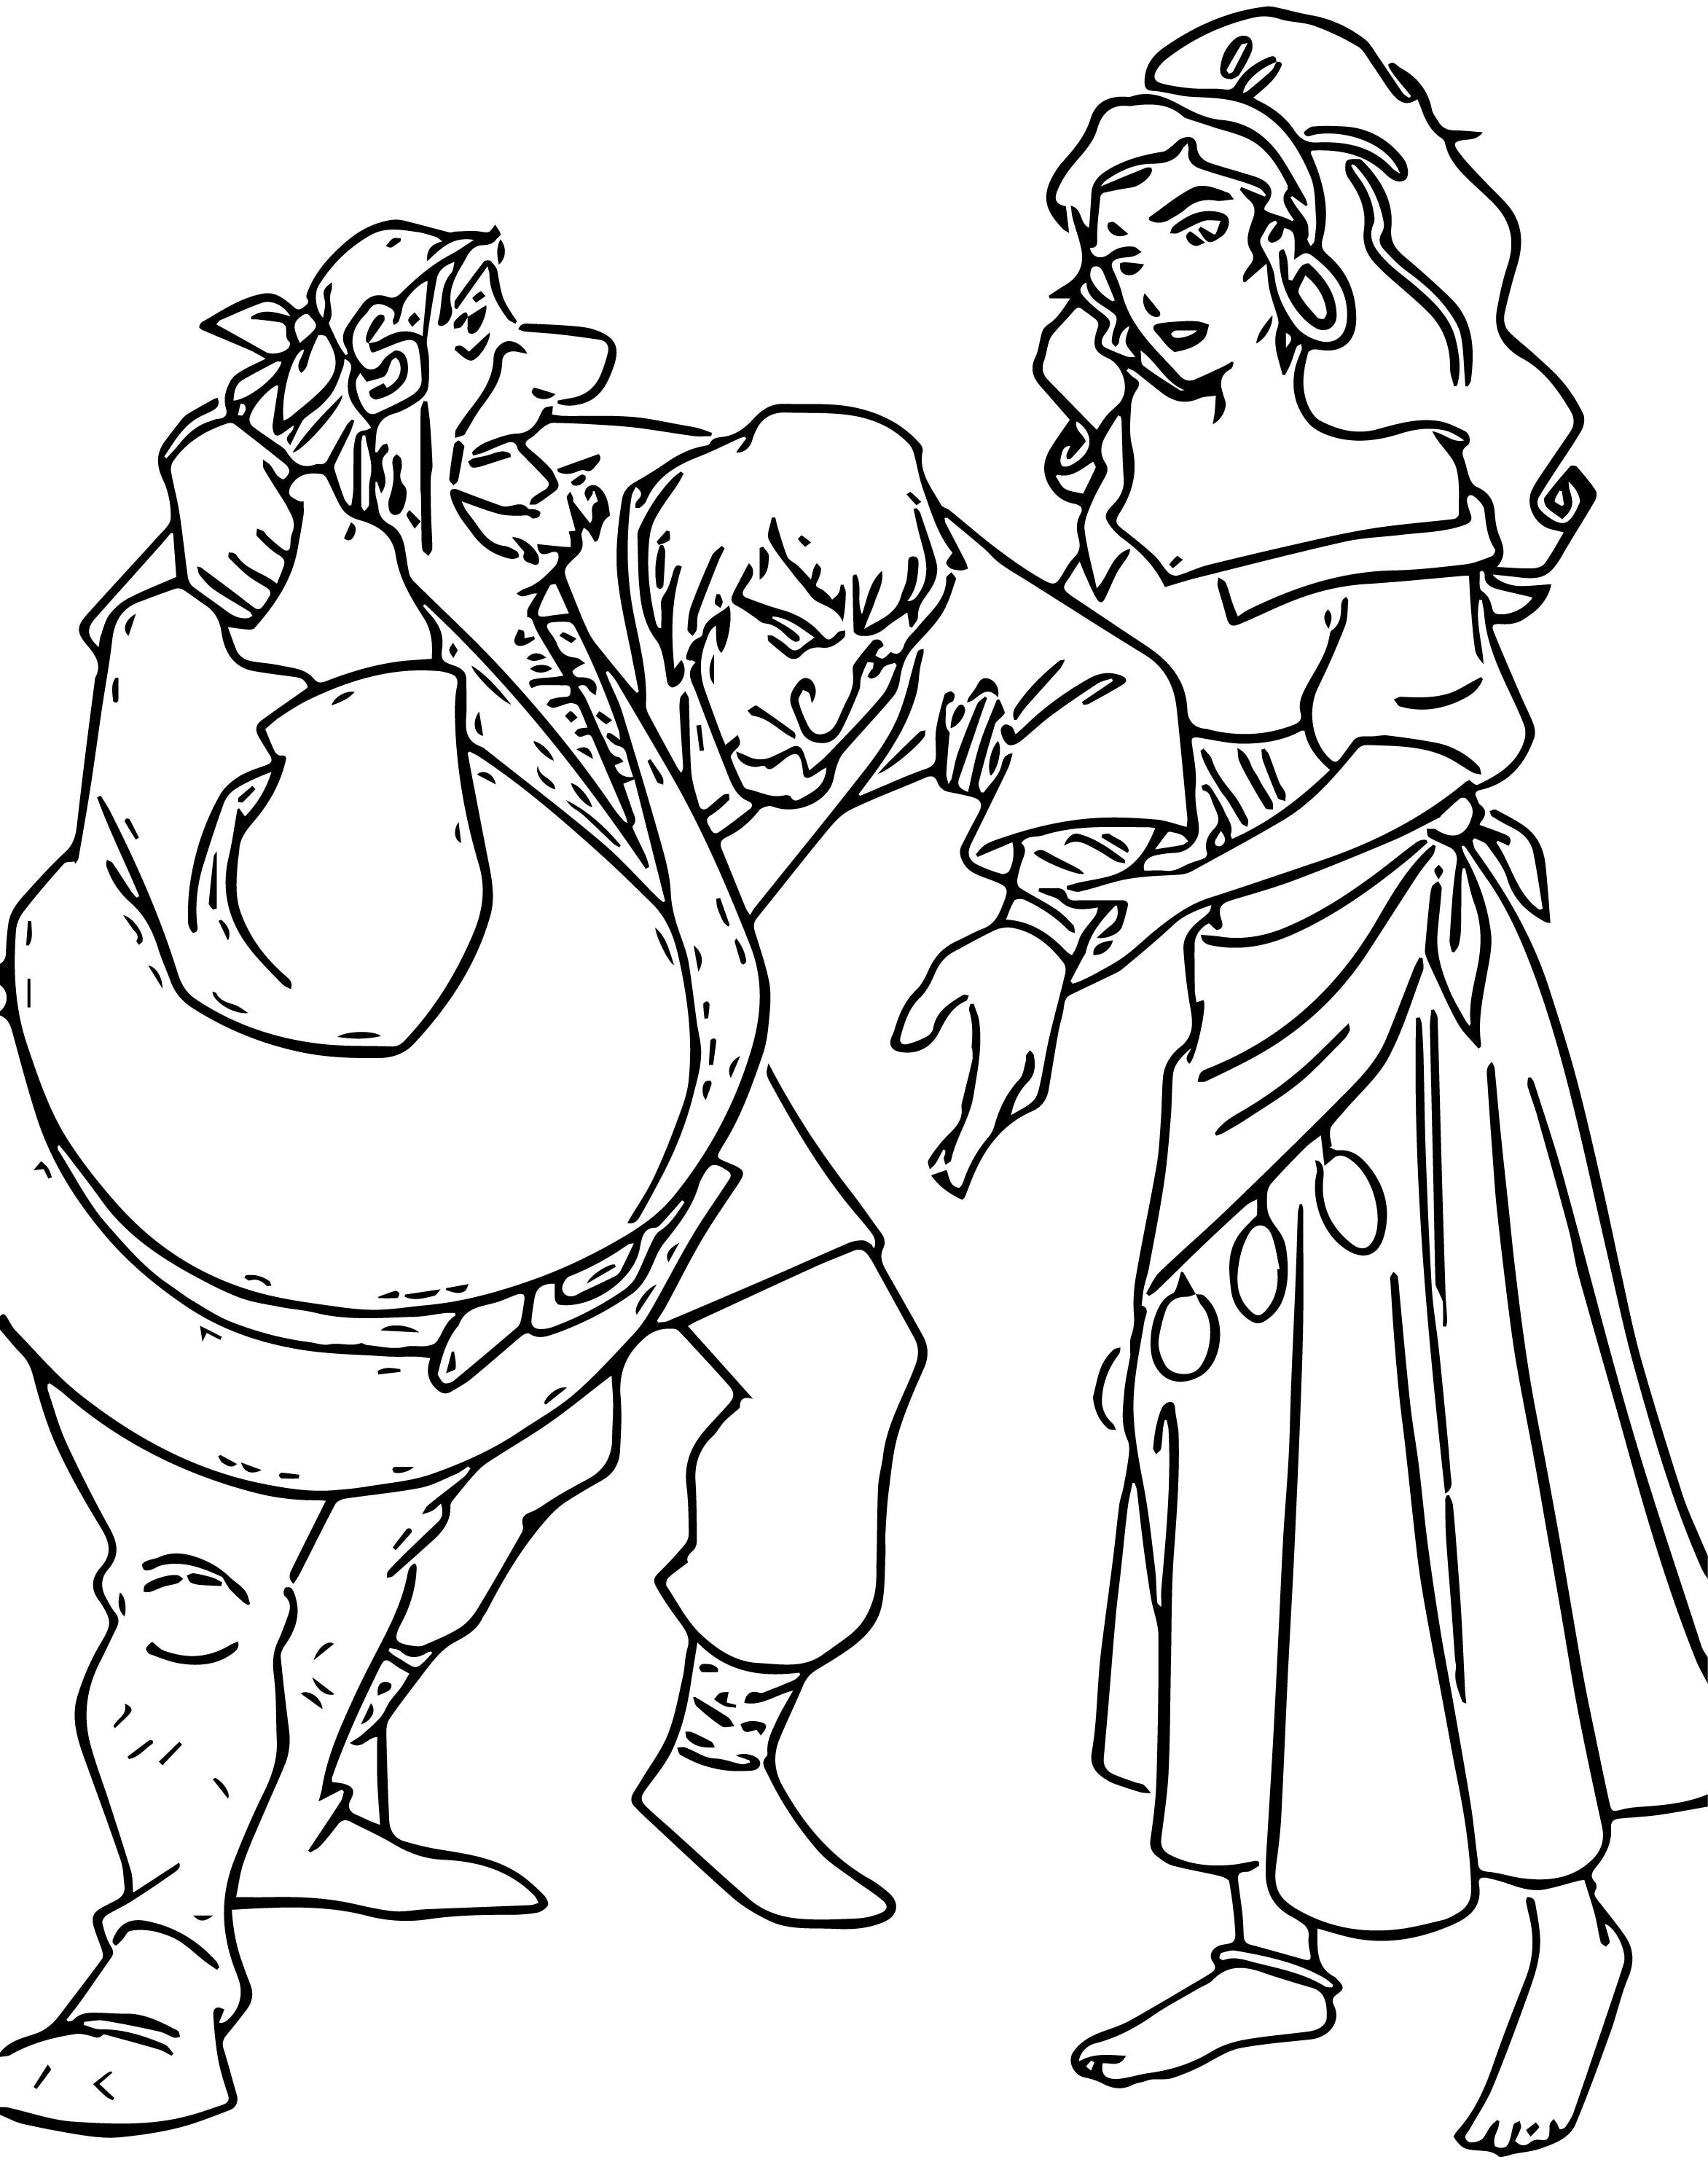 The Hunchback Of Notre Dame Gypsies Cartoon Coloring Pages